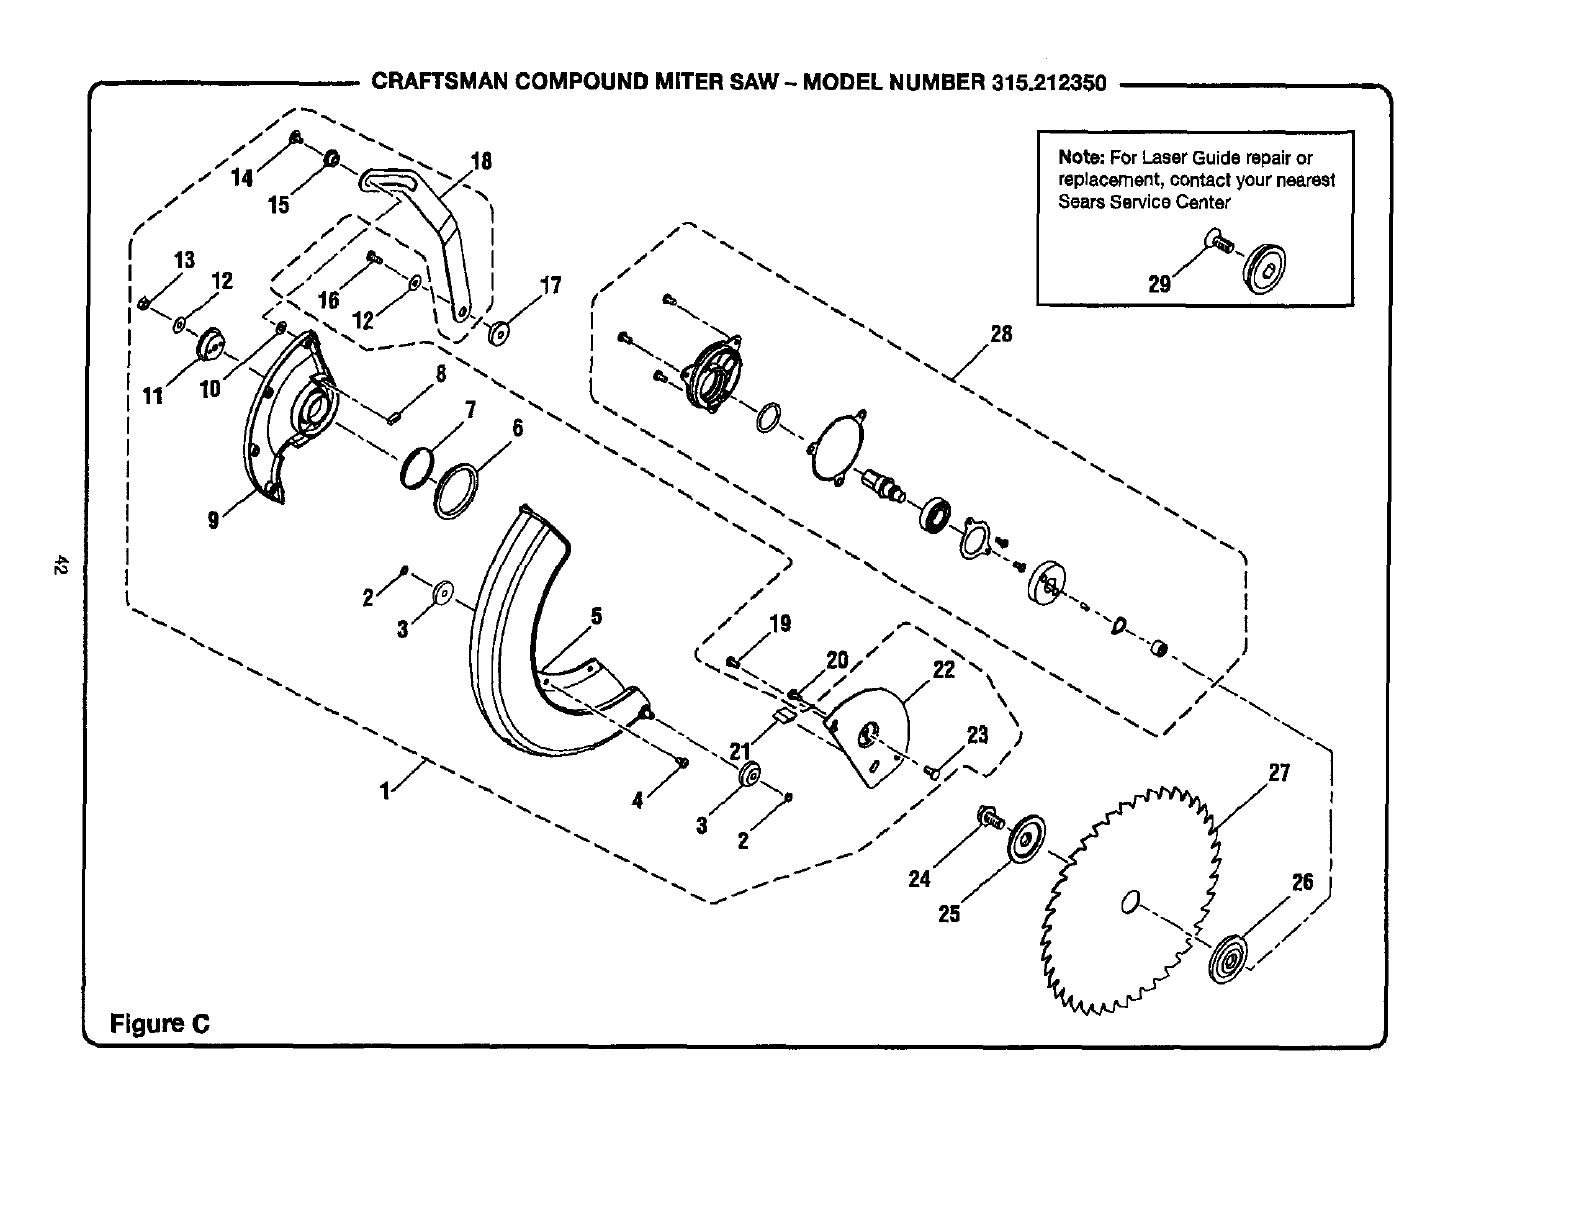 Craftsman 315212350 User Manual 12 COMPOUND MITER SAW